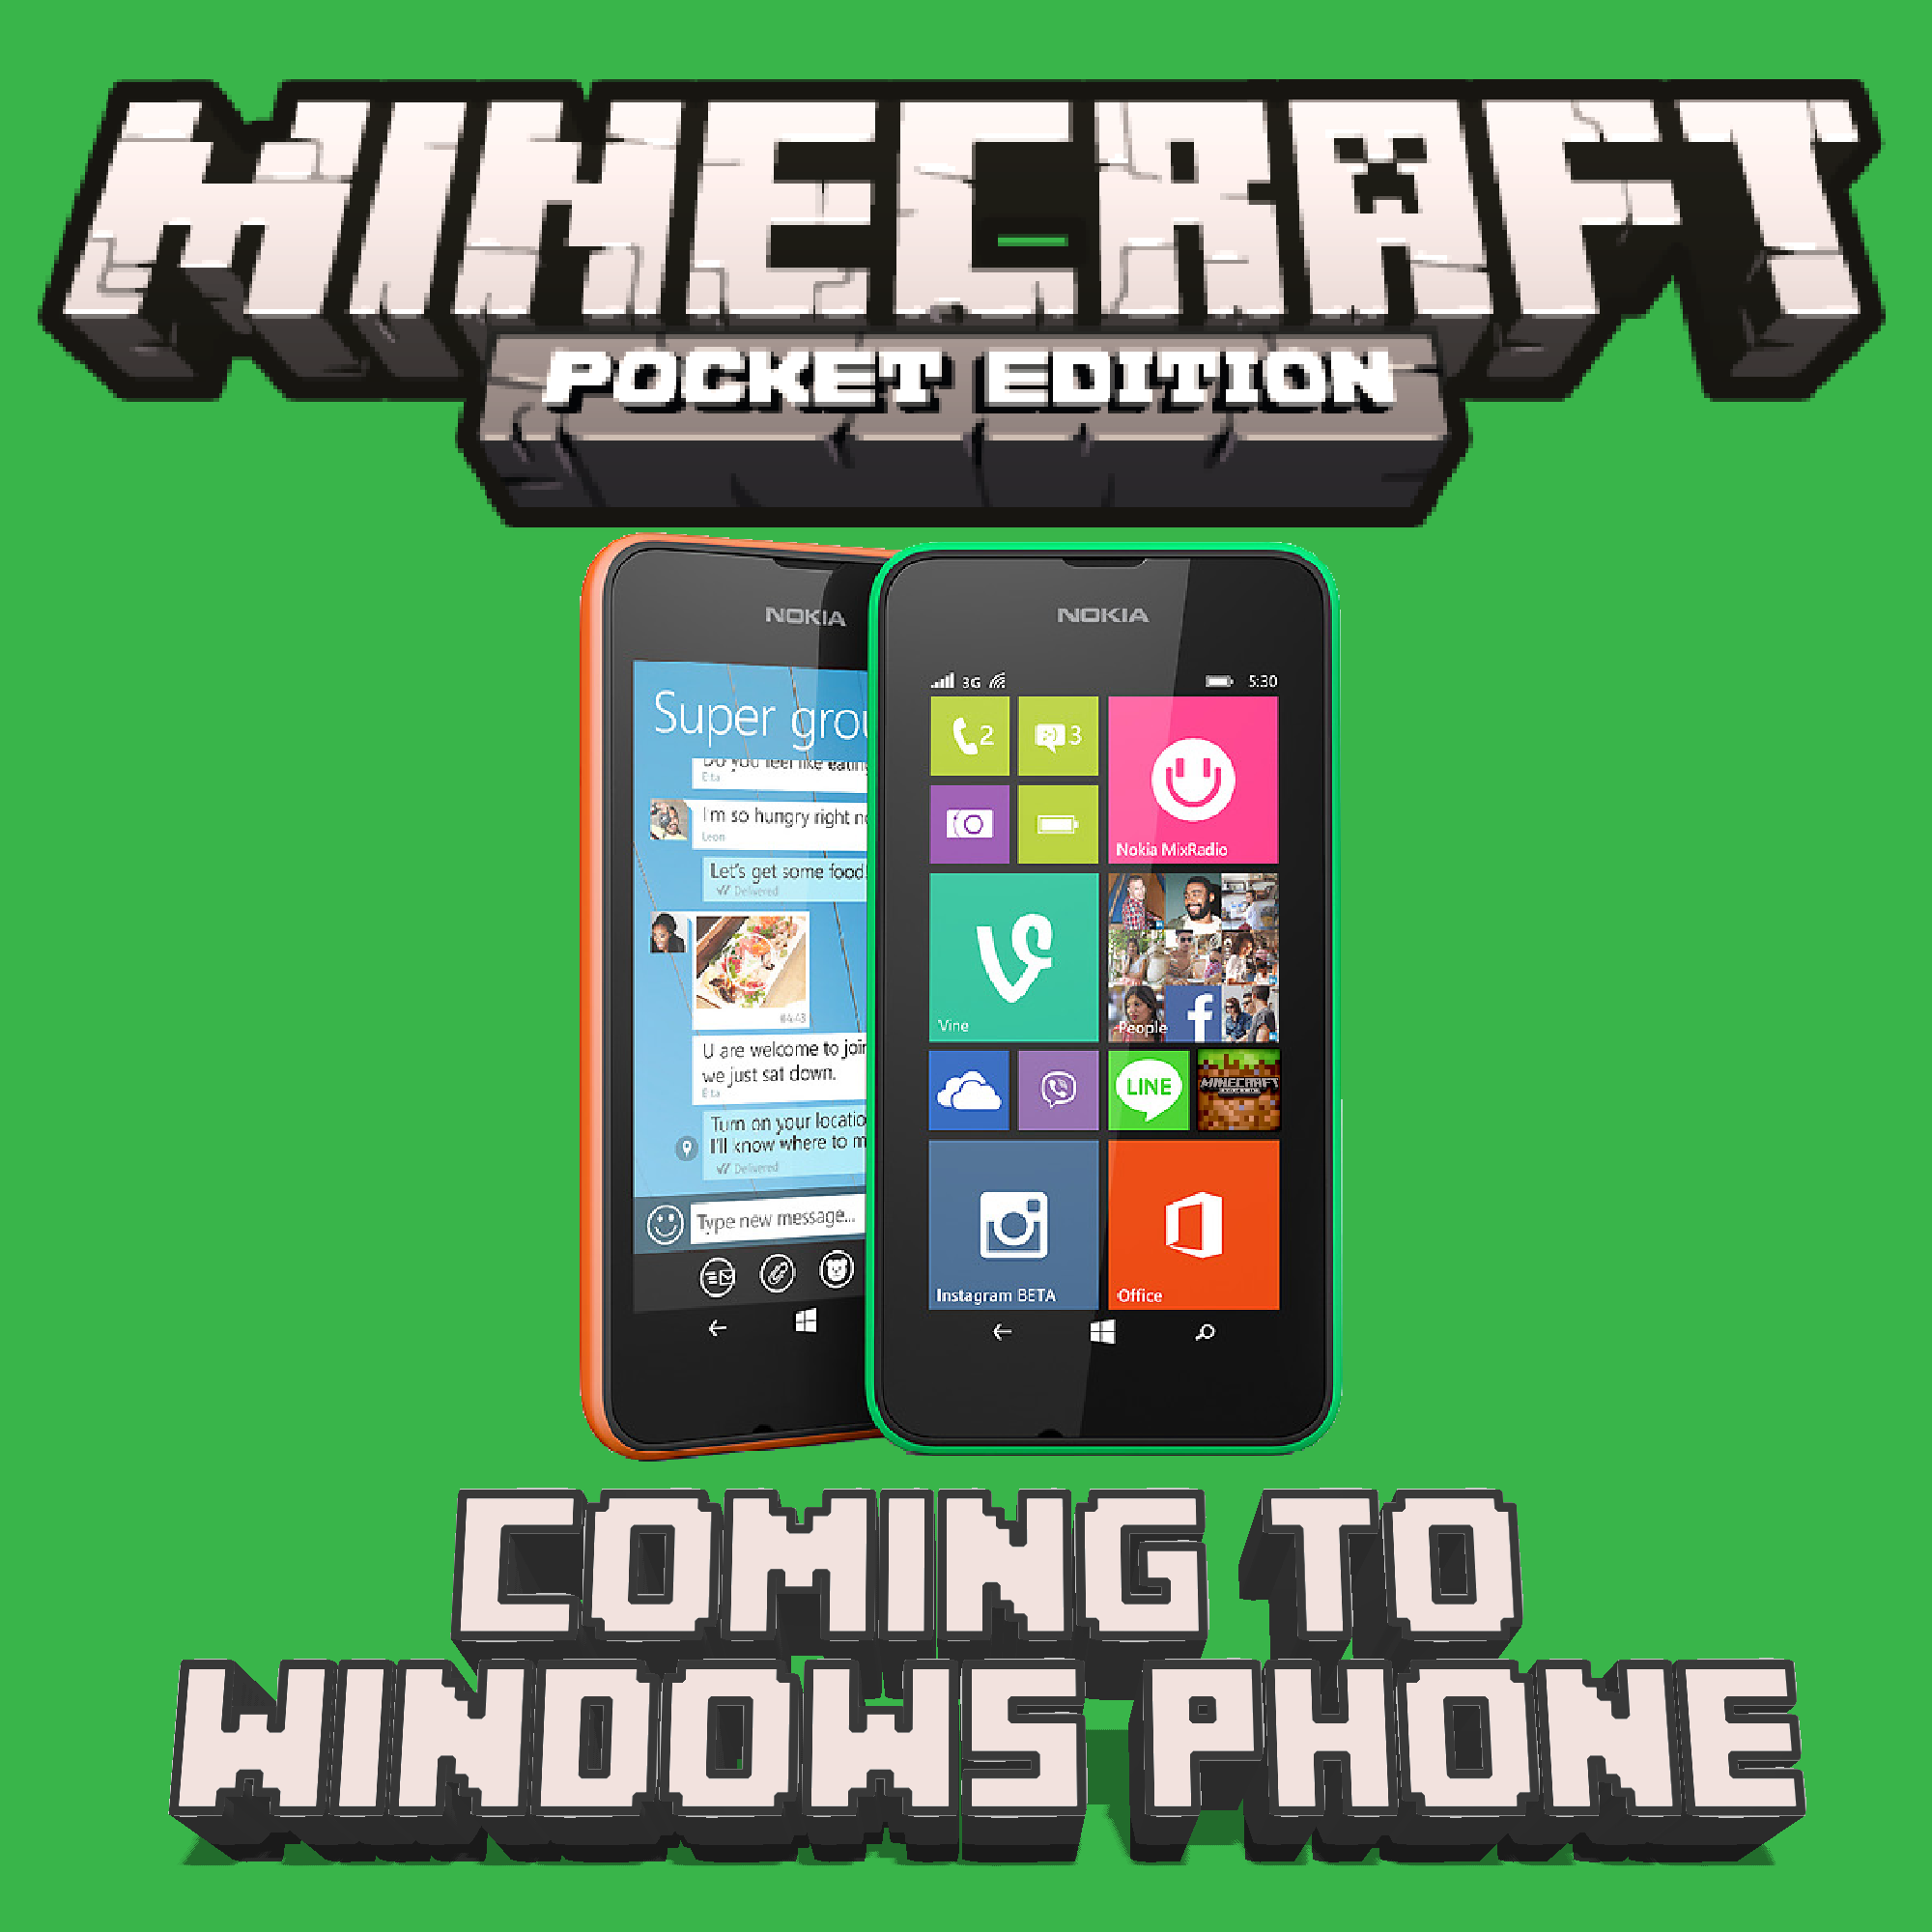 WINDOWS PHONE Minecraft APPX - iandphone.net